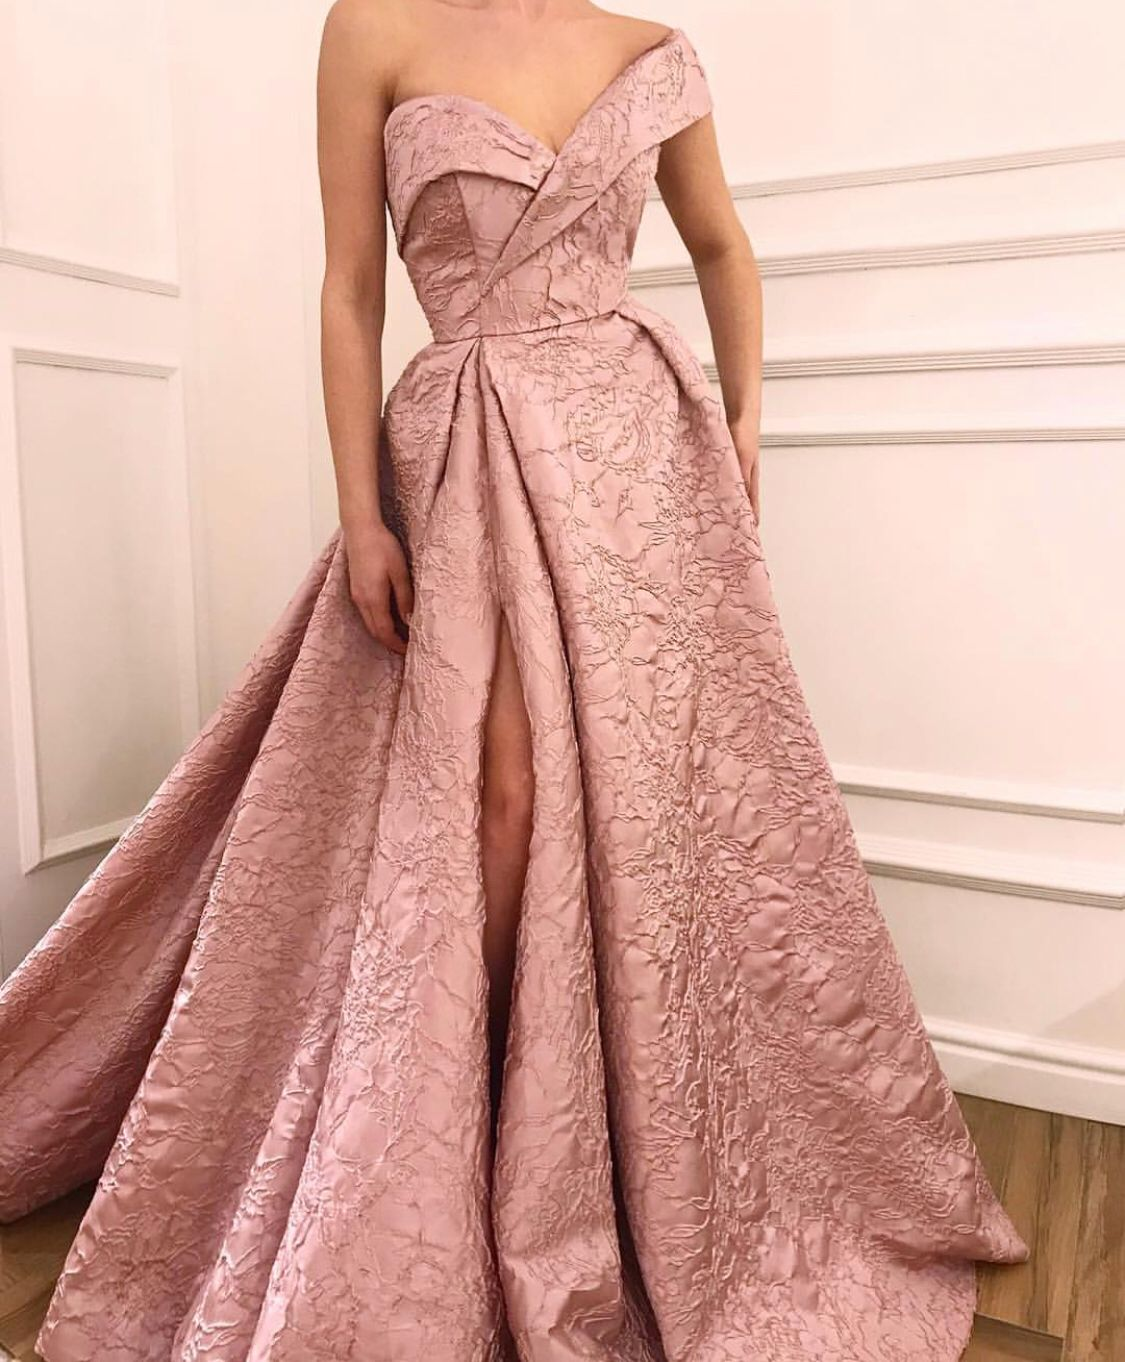 Teuta Matoshi Duriqi | Vestidos | Pinterest | Gowns, Prom and Formal